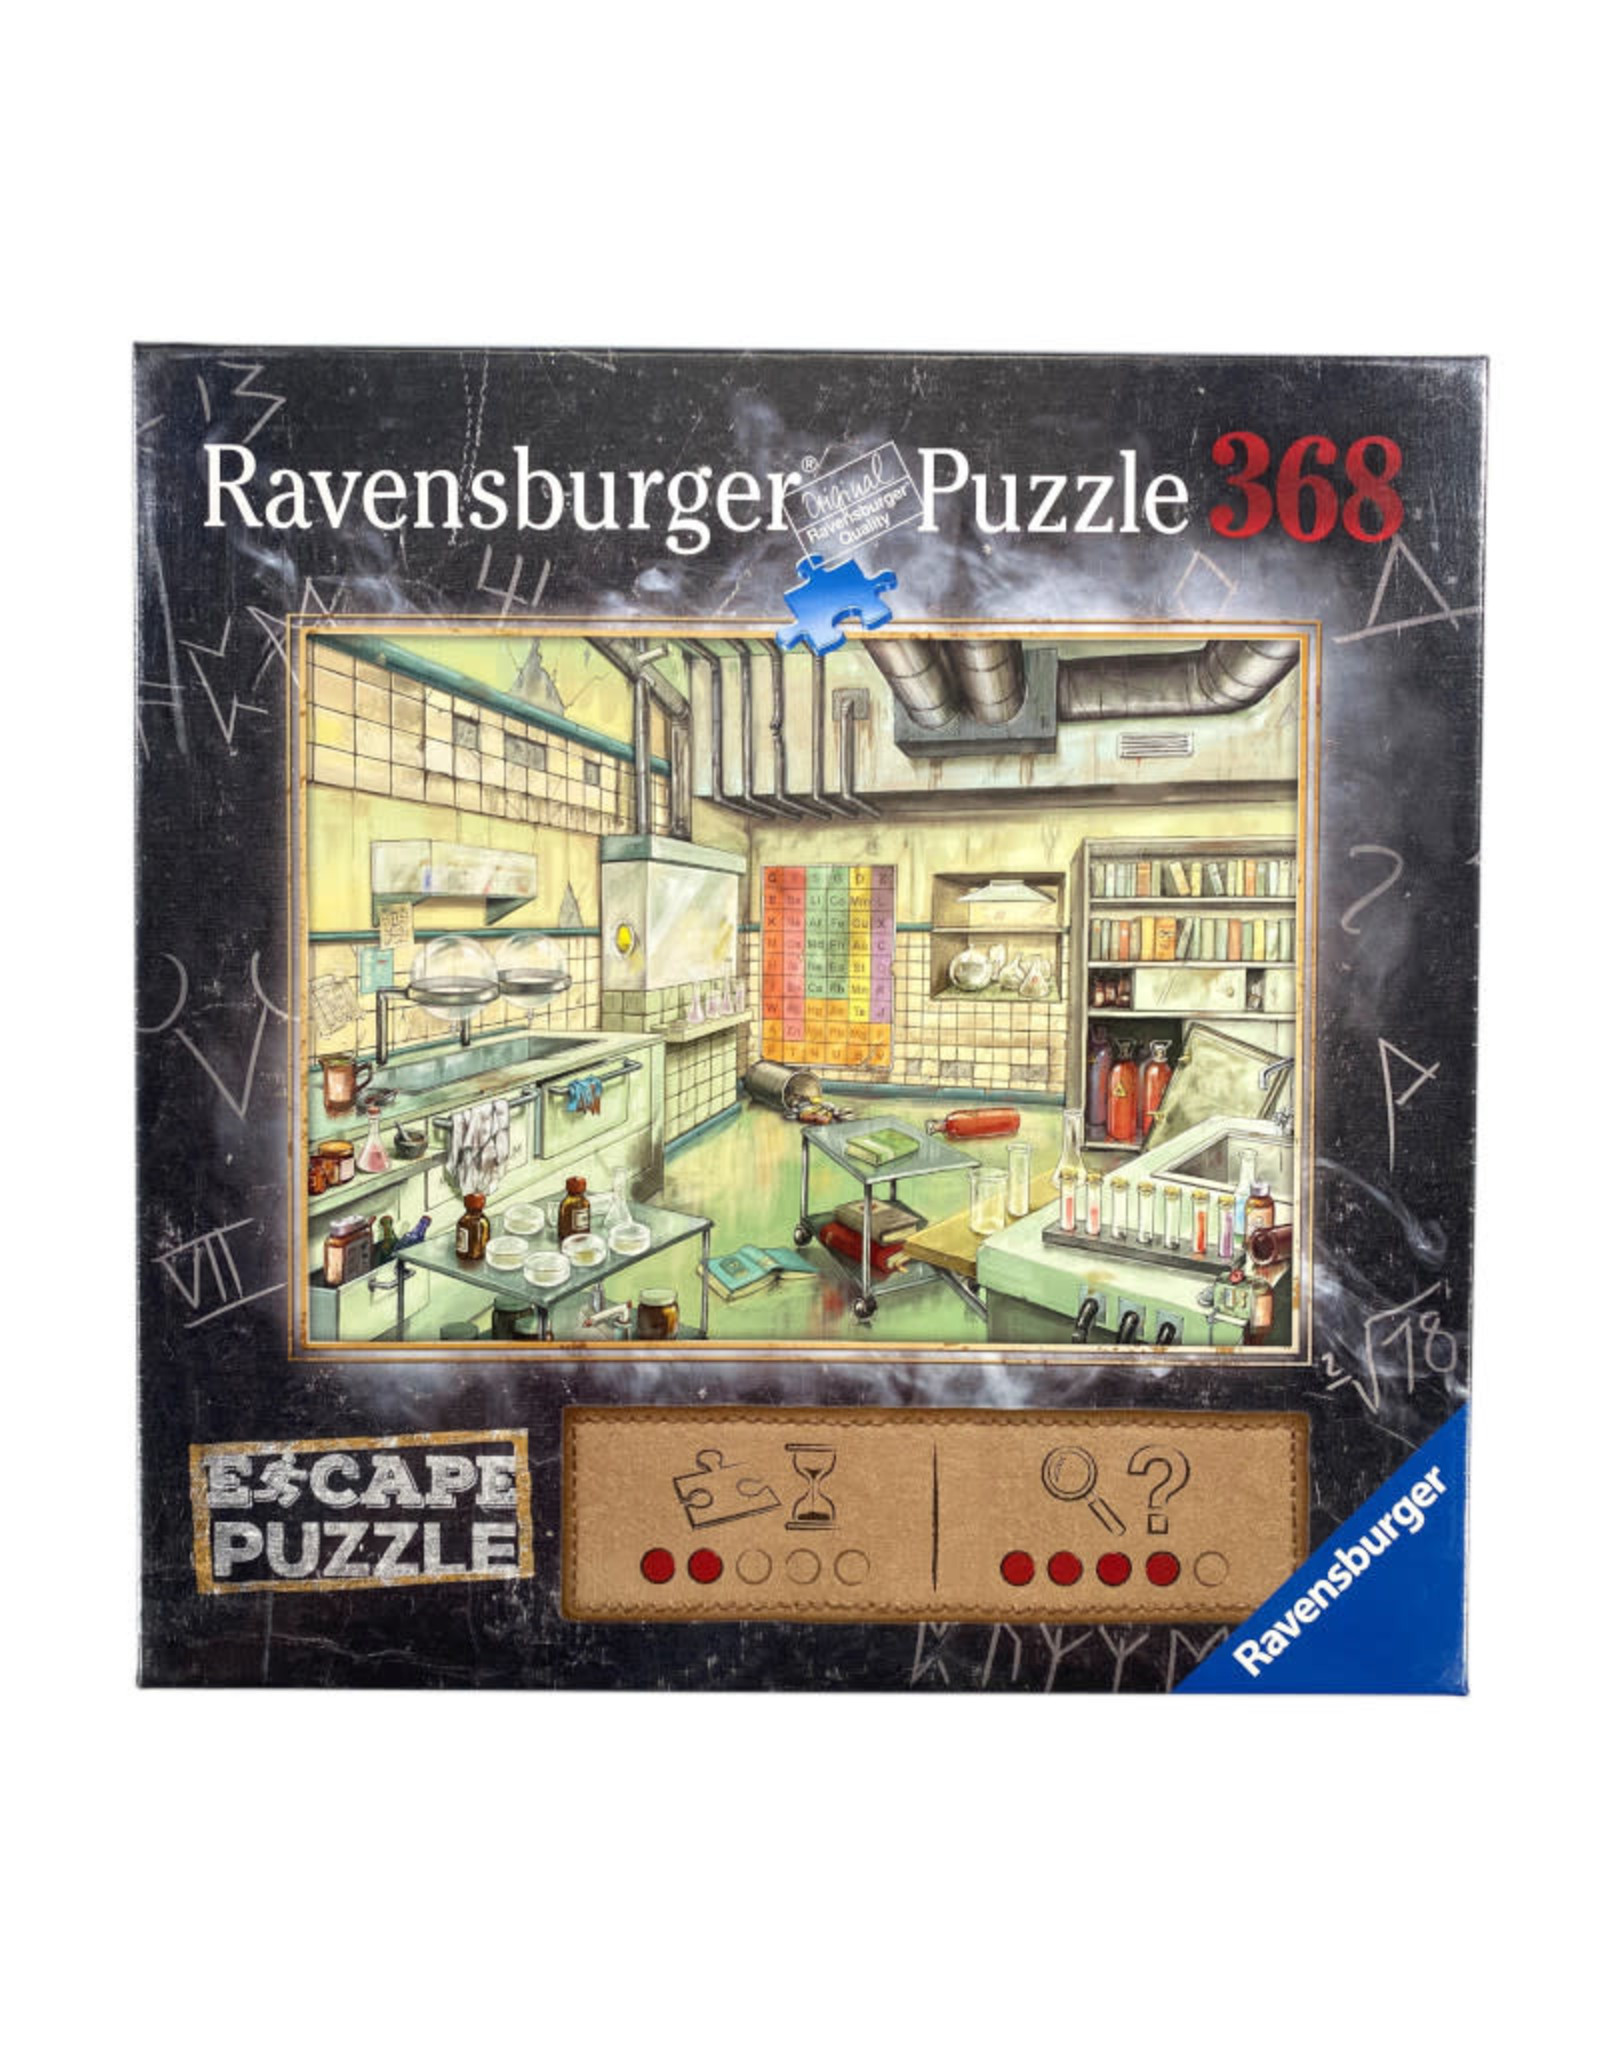 Ravensburger Laboratory Escape Puzzle 368 PCS